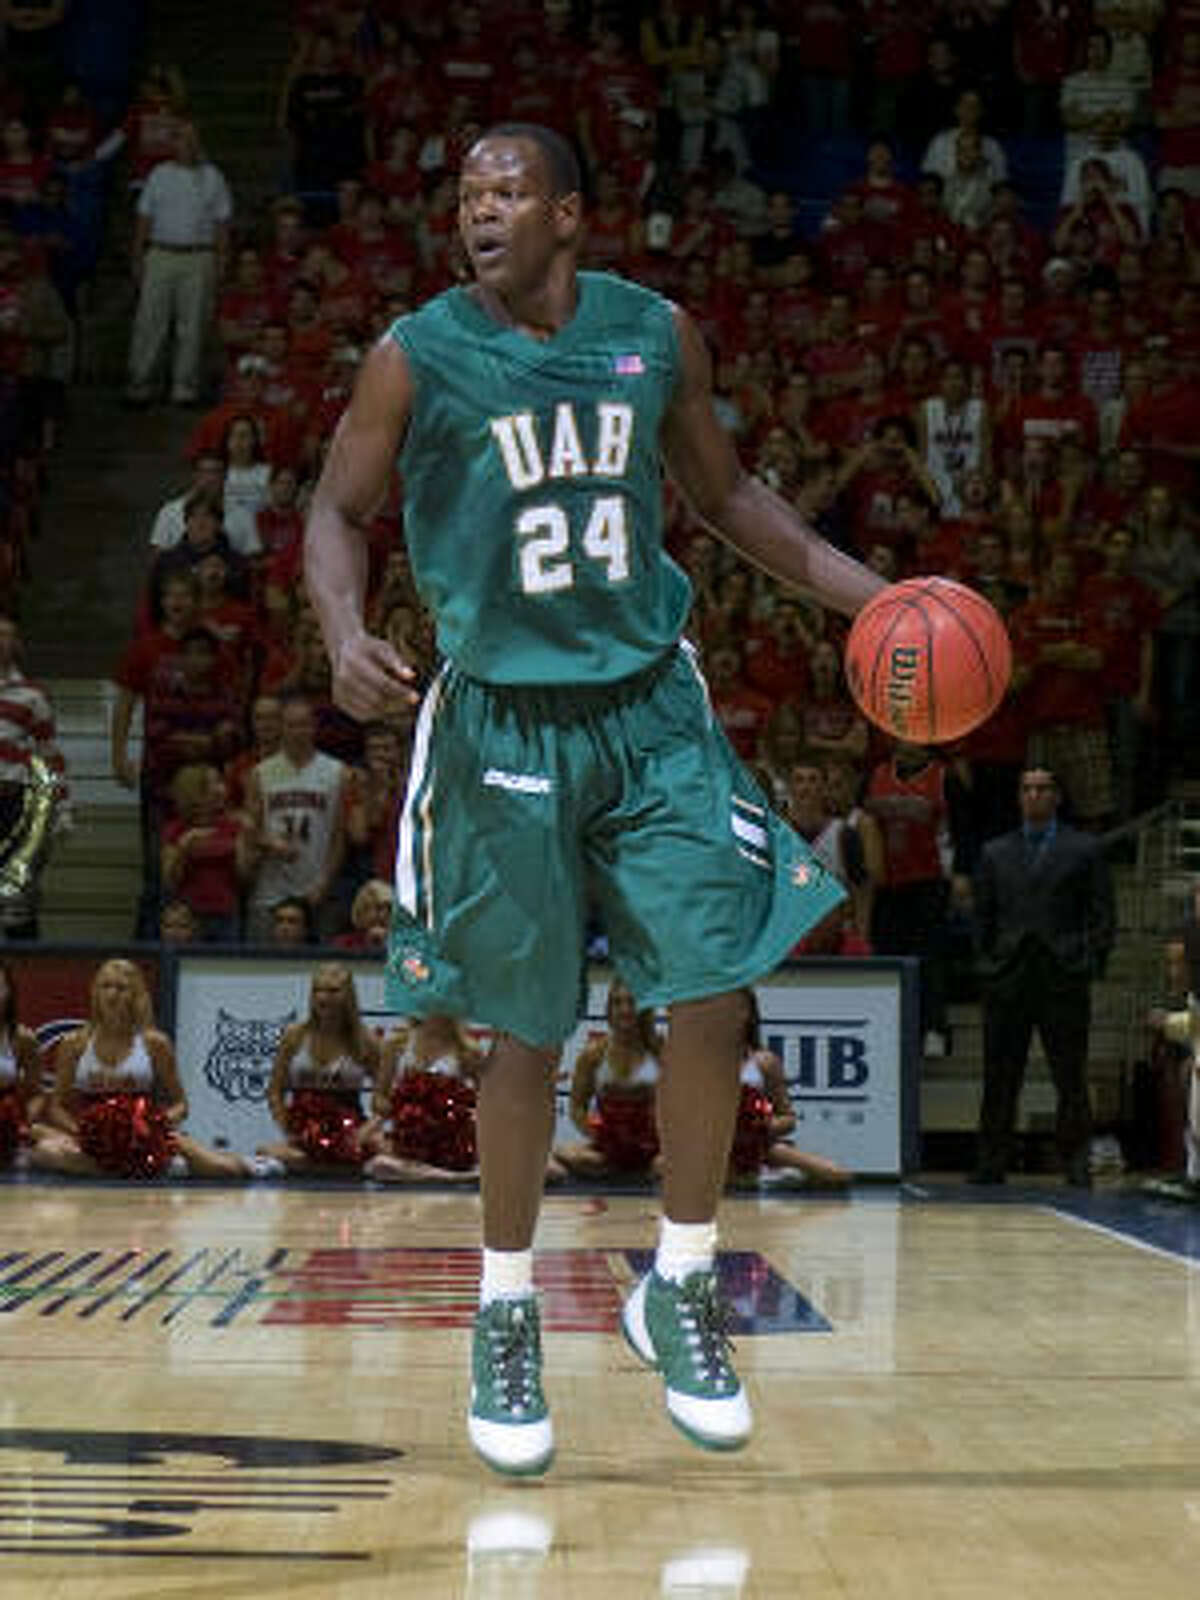 UAB (21-10): The Blazers won 11 of their final 14 games to end the season. Guard Paul Delaney rebounded from a serious knee injury to average 15.9 points and 4.4 rebounds. Guard/forward Robert Vaden (photo) averages a team-high 17.5 points and leads C-USA with 96 3-pointers.